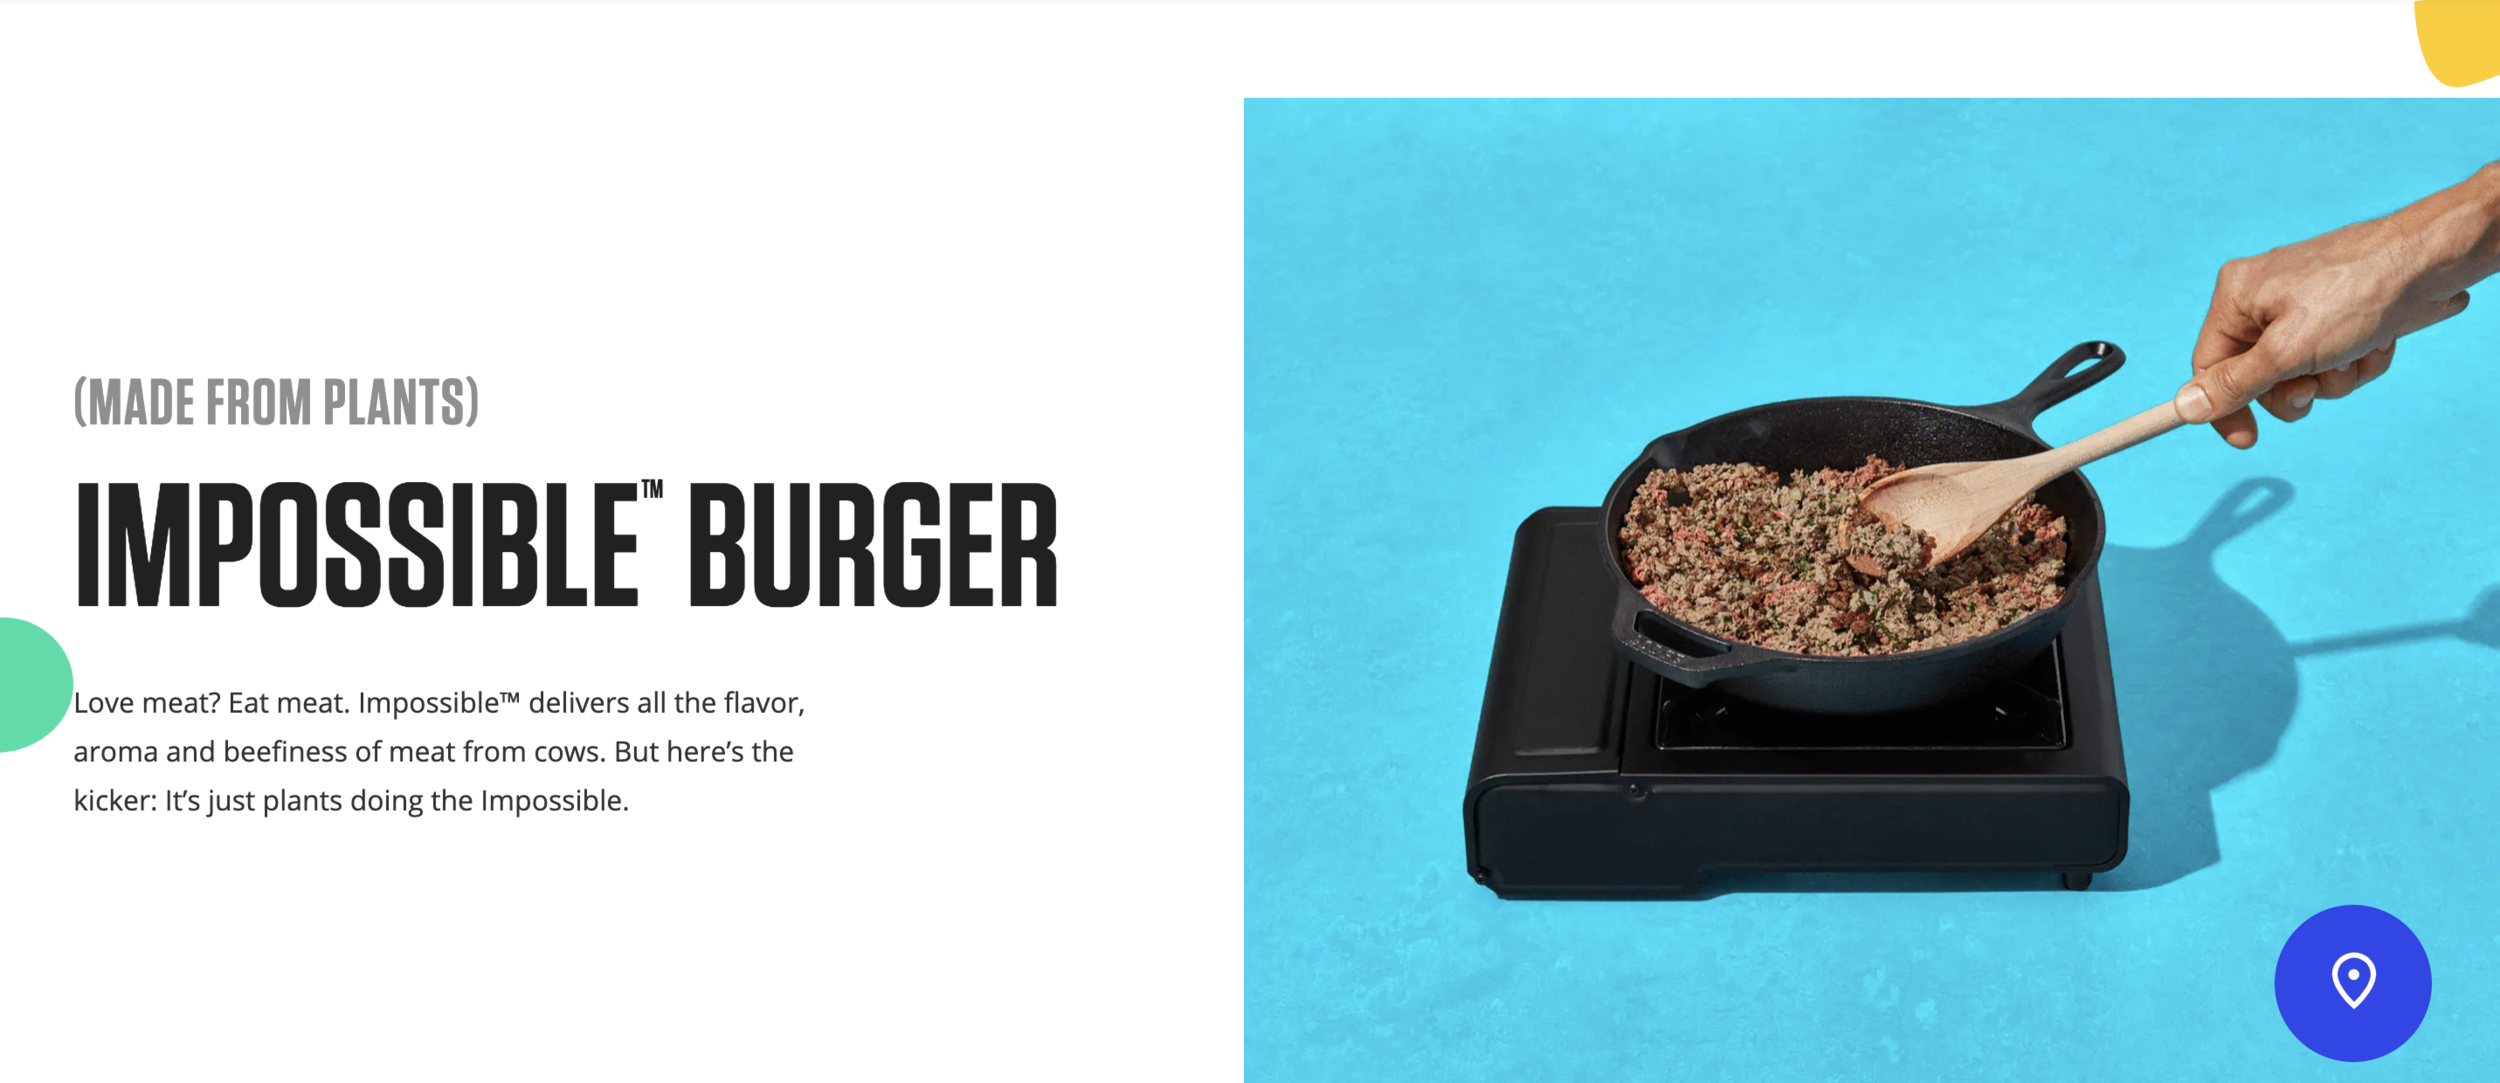 Impossible Foods make the seemingly impossible - including meatless burgers. Burger King are soon to launch the Impossible Whopper in collaboration with the company.